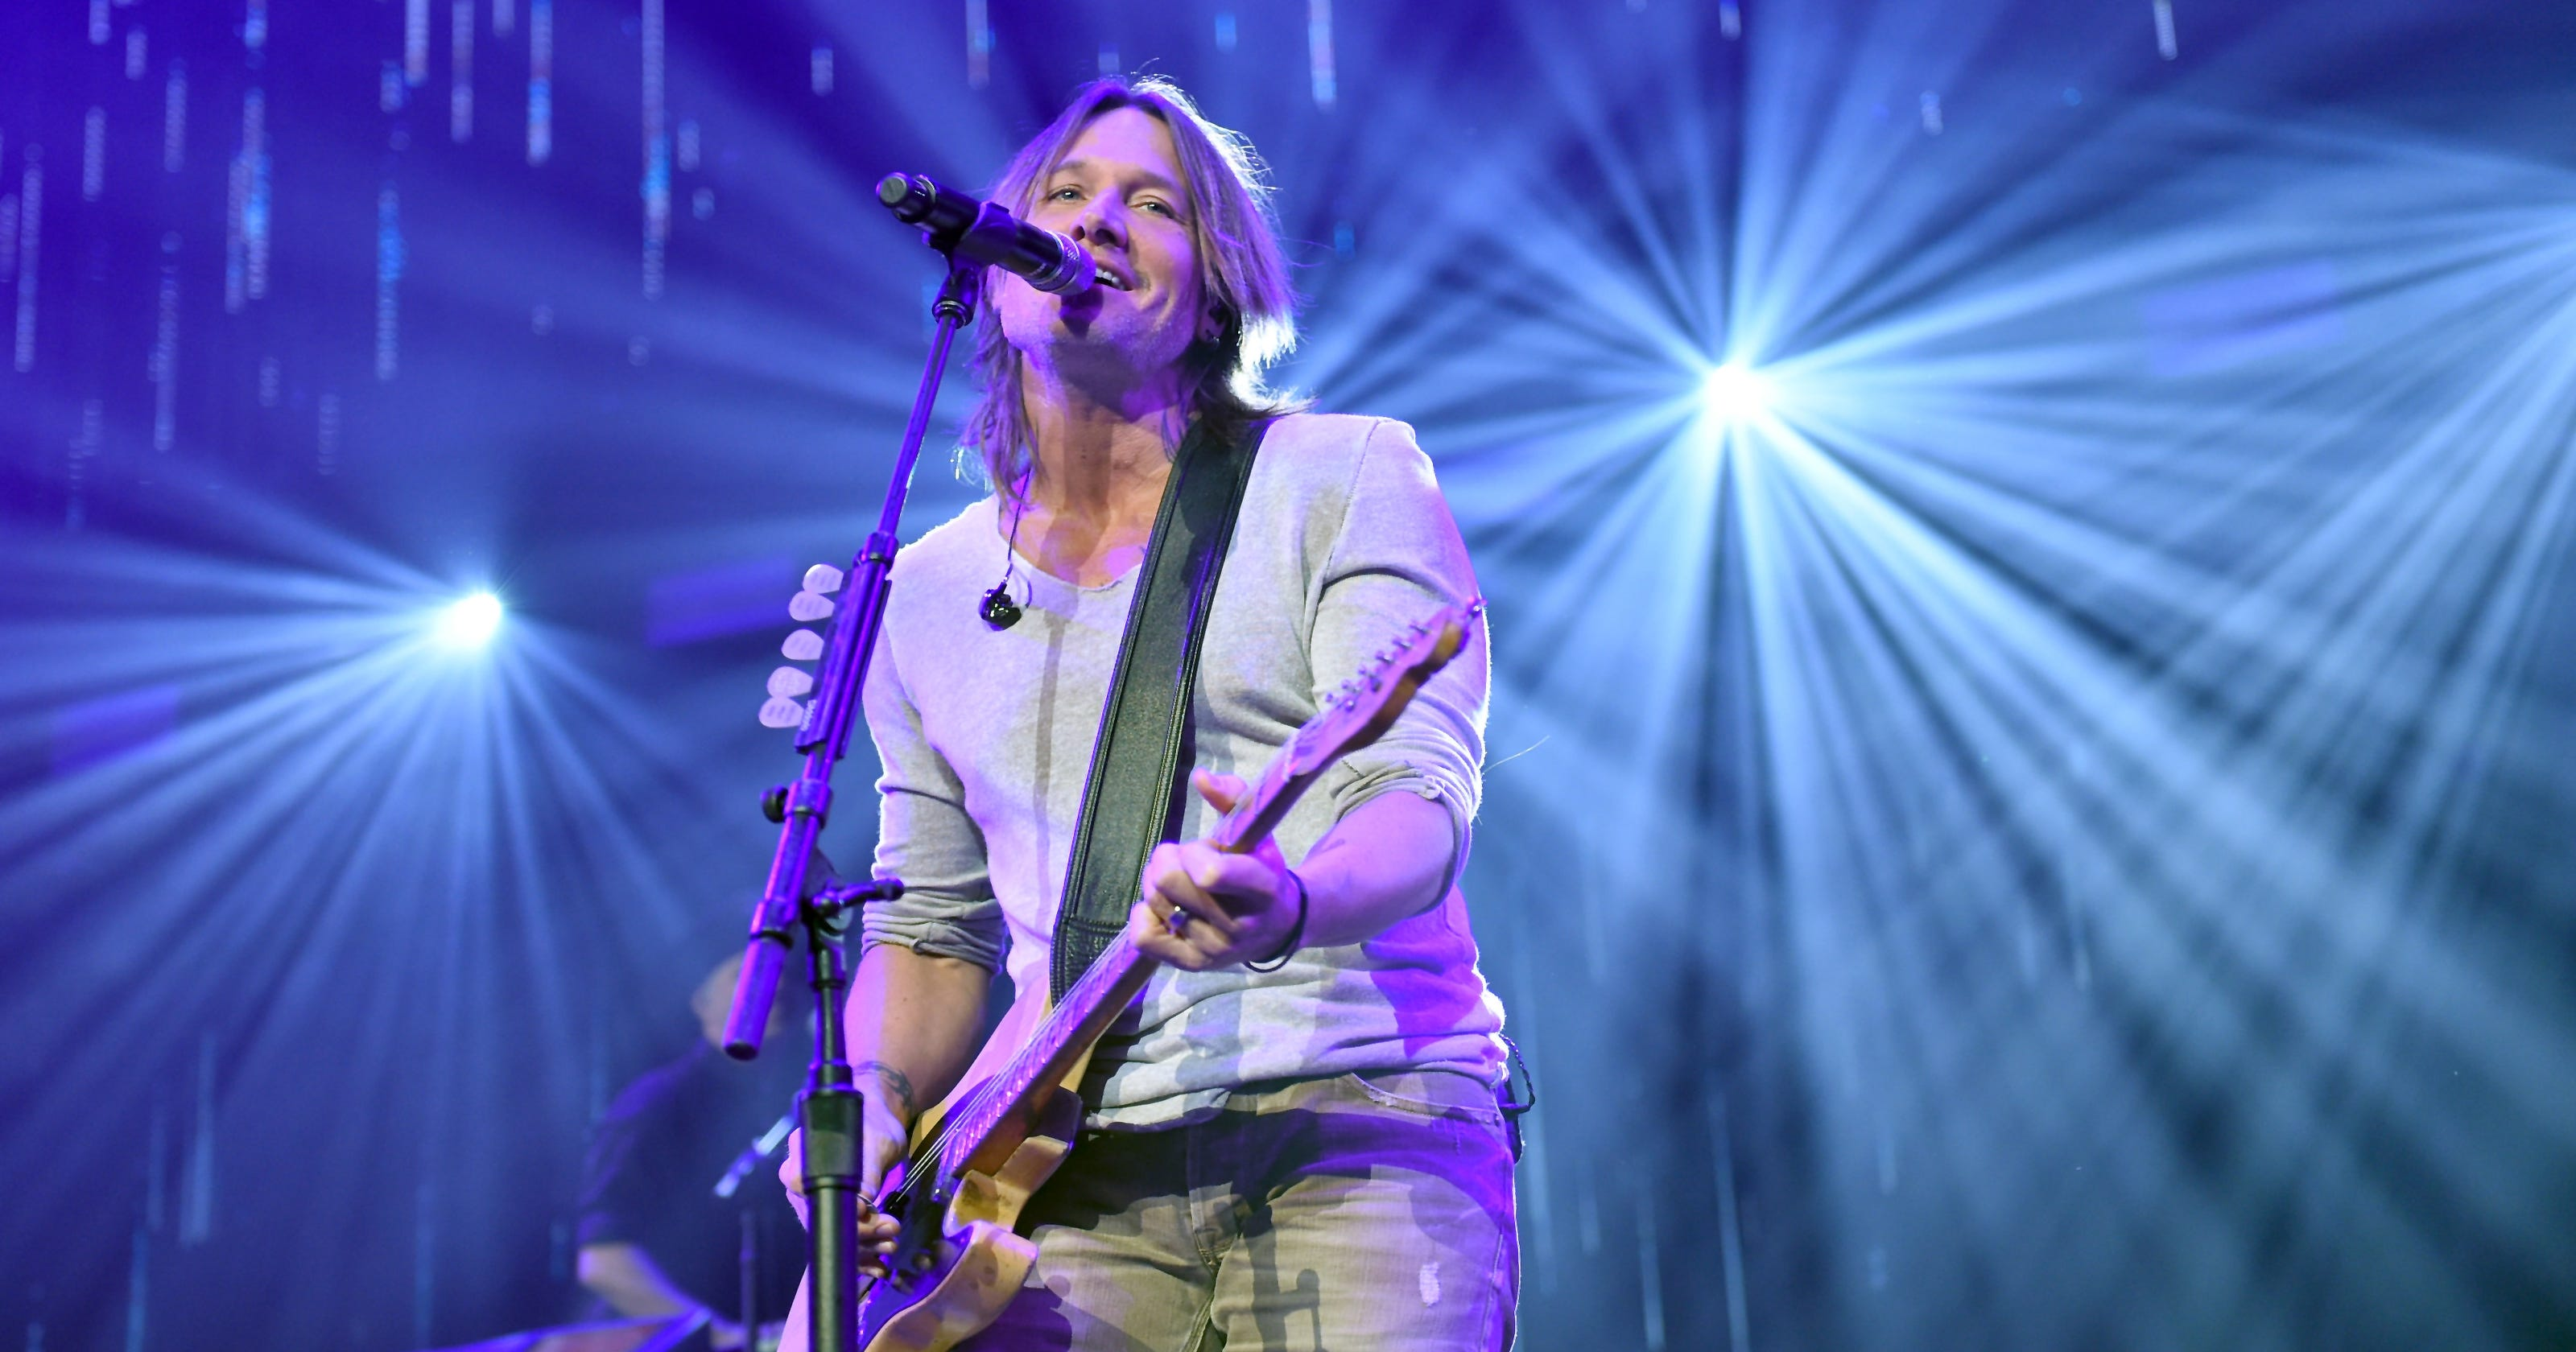 Keith Urban: Merle Haggard-inspired 'Coming Home' single